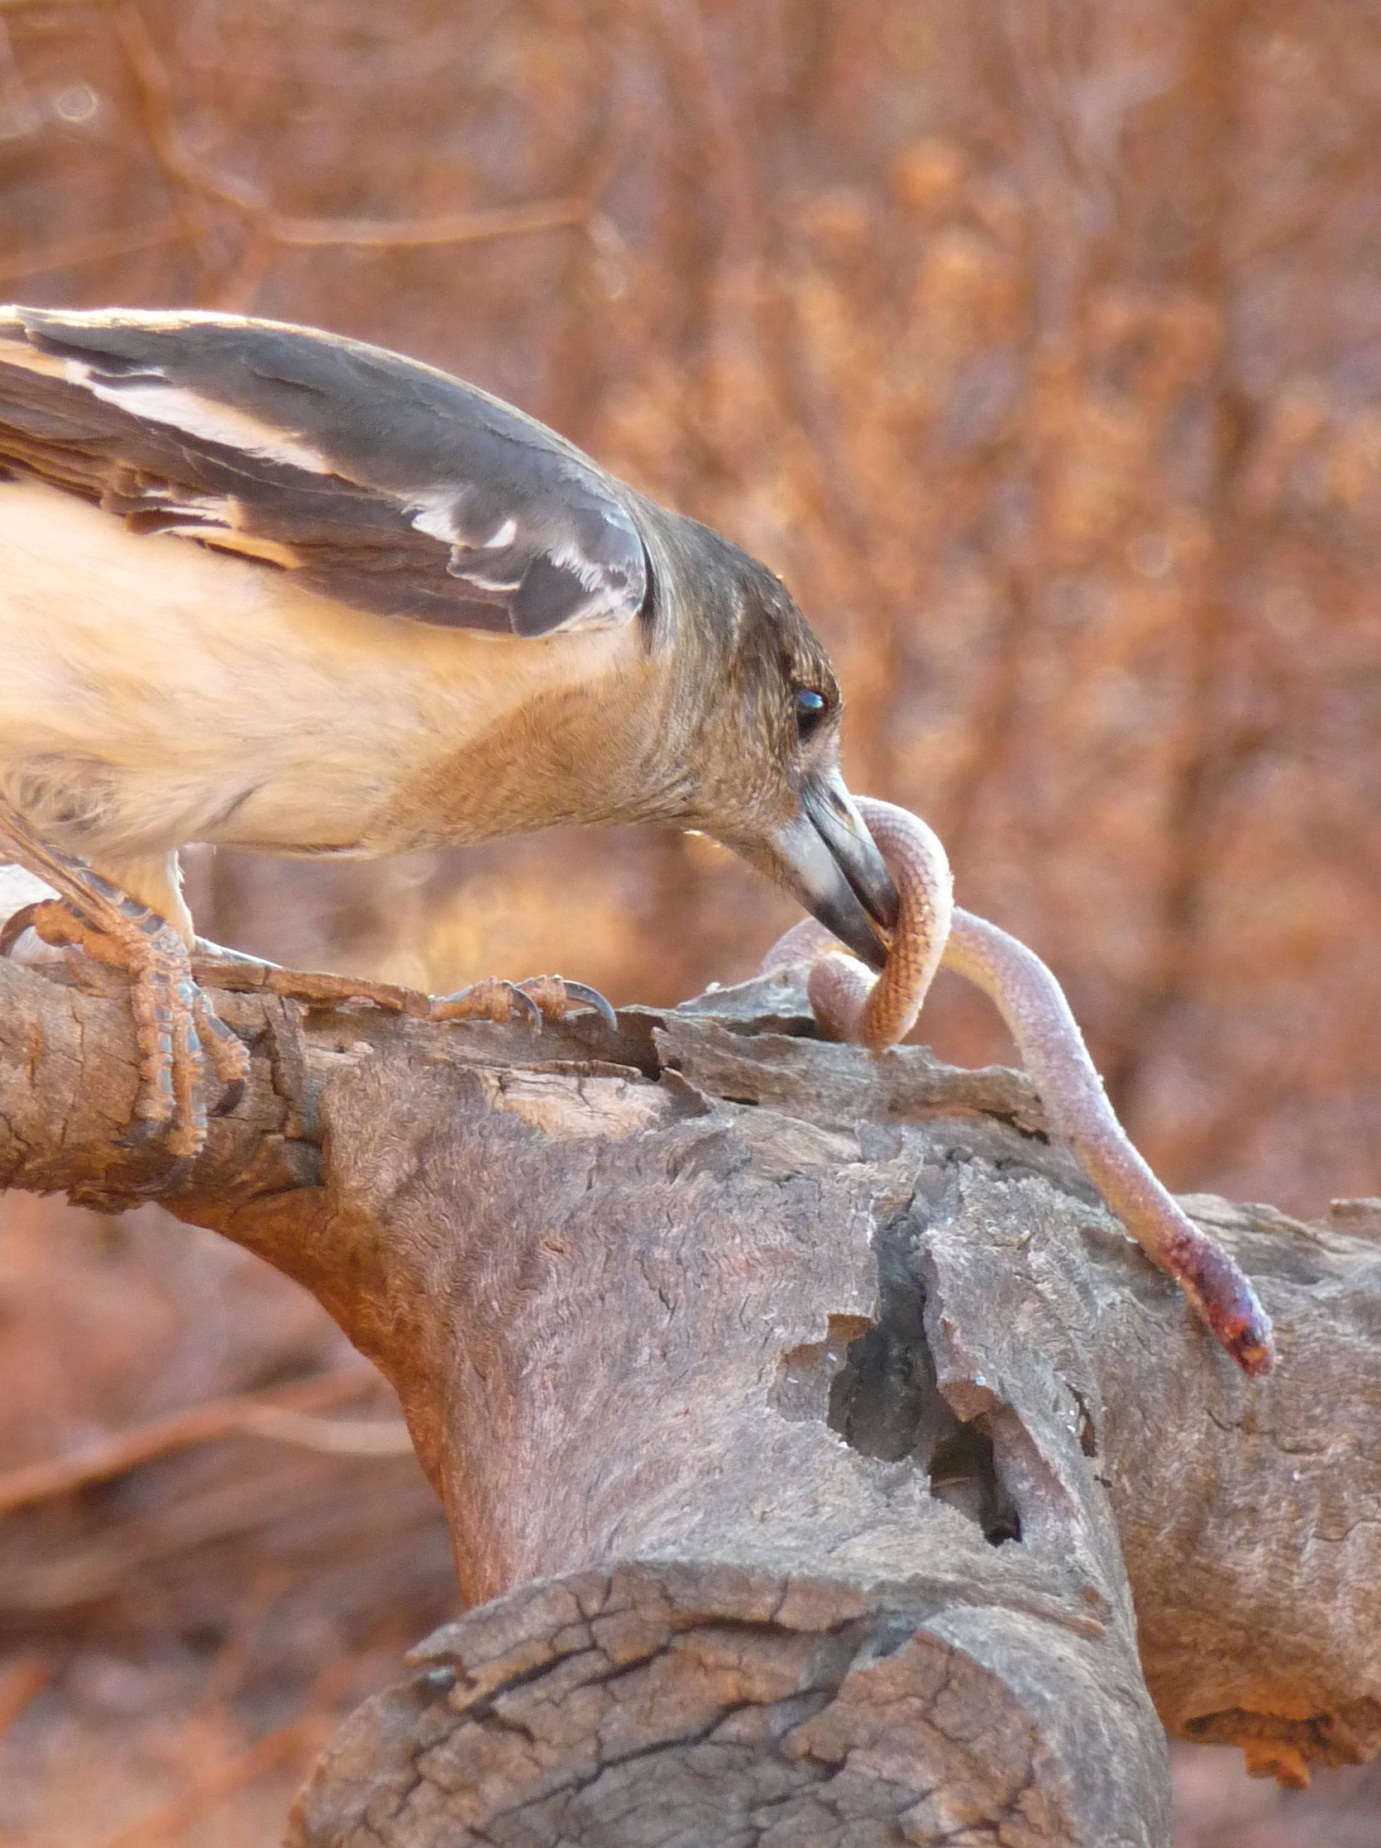 Pied Butcherbird  Cracticus nigrogularis , wrestling with a Western Hooded Scaly-foot  Pygopus nigriceps , or as he might term it - breakfast.